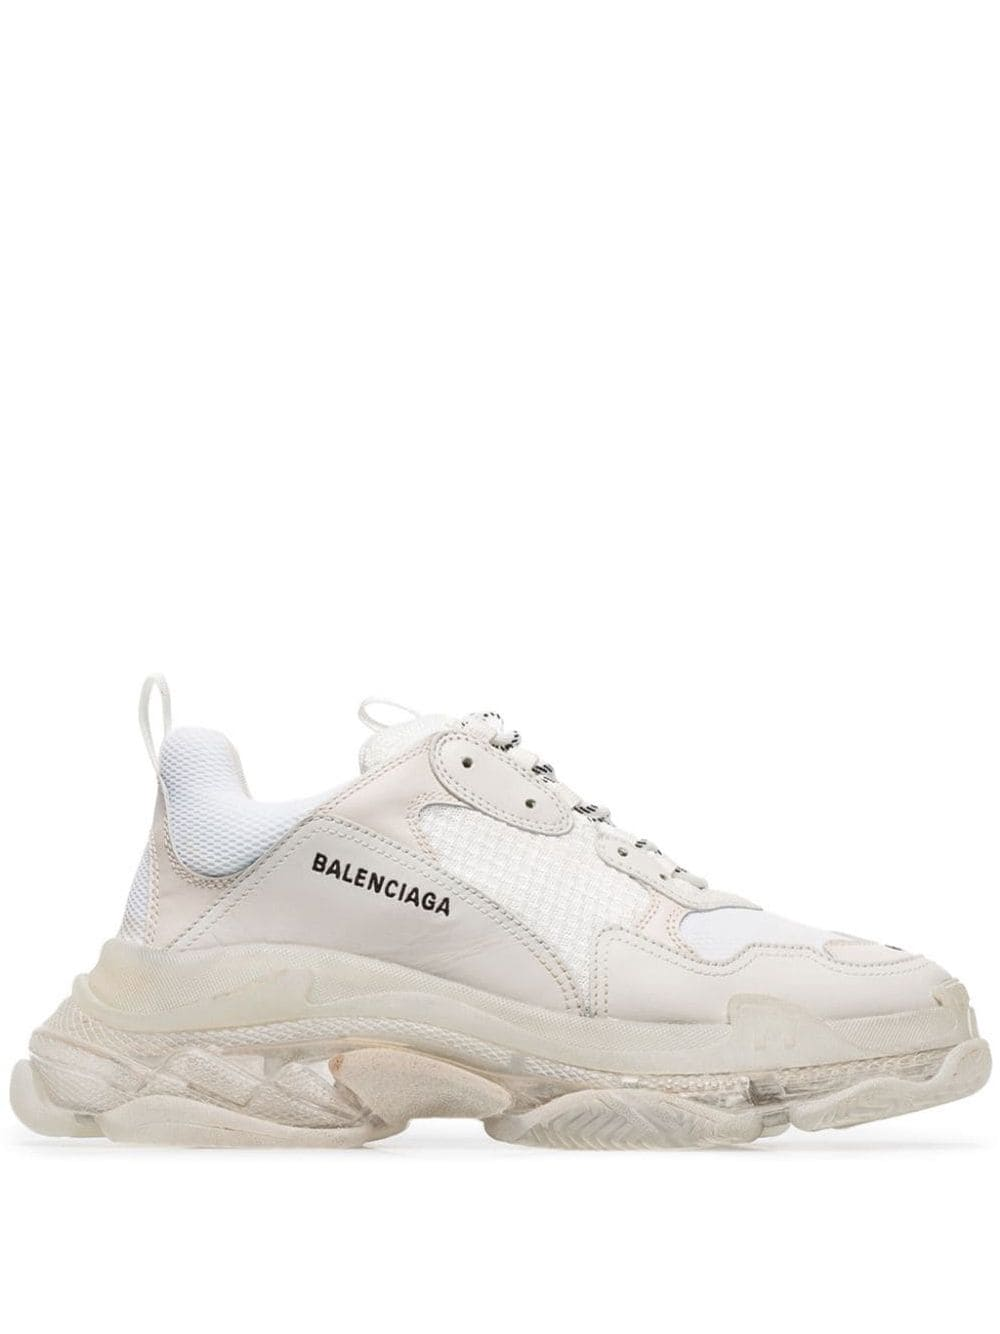 balenciaga triple s white